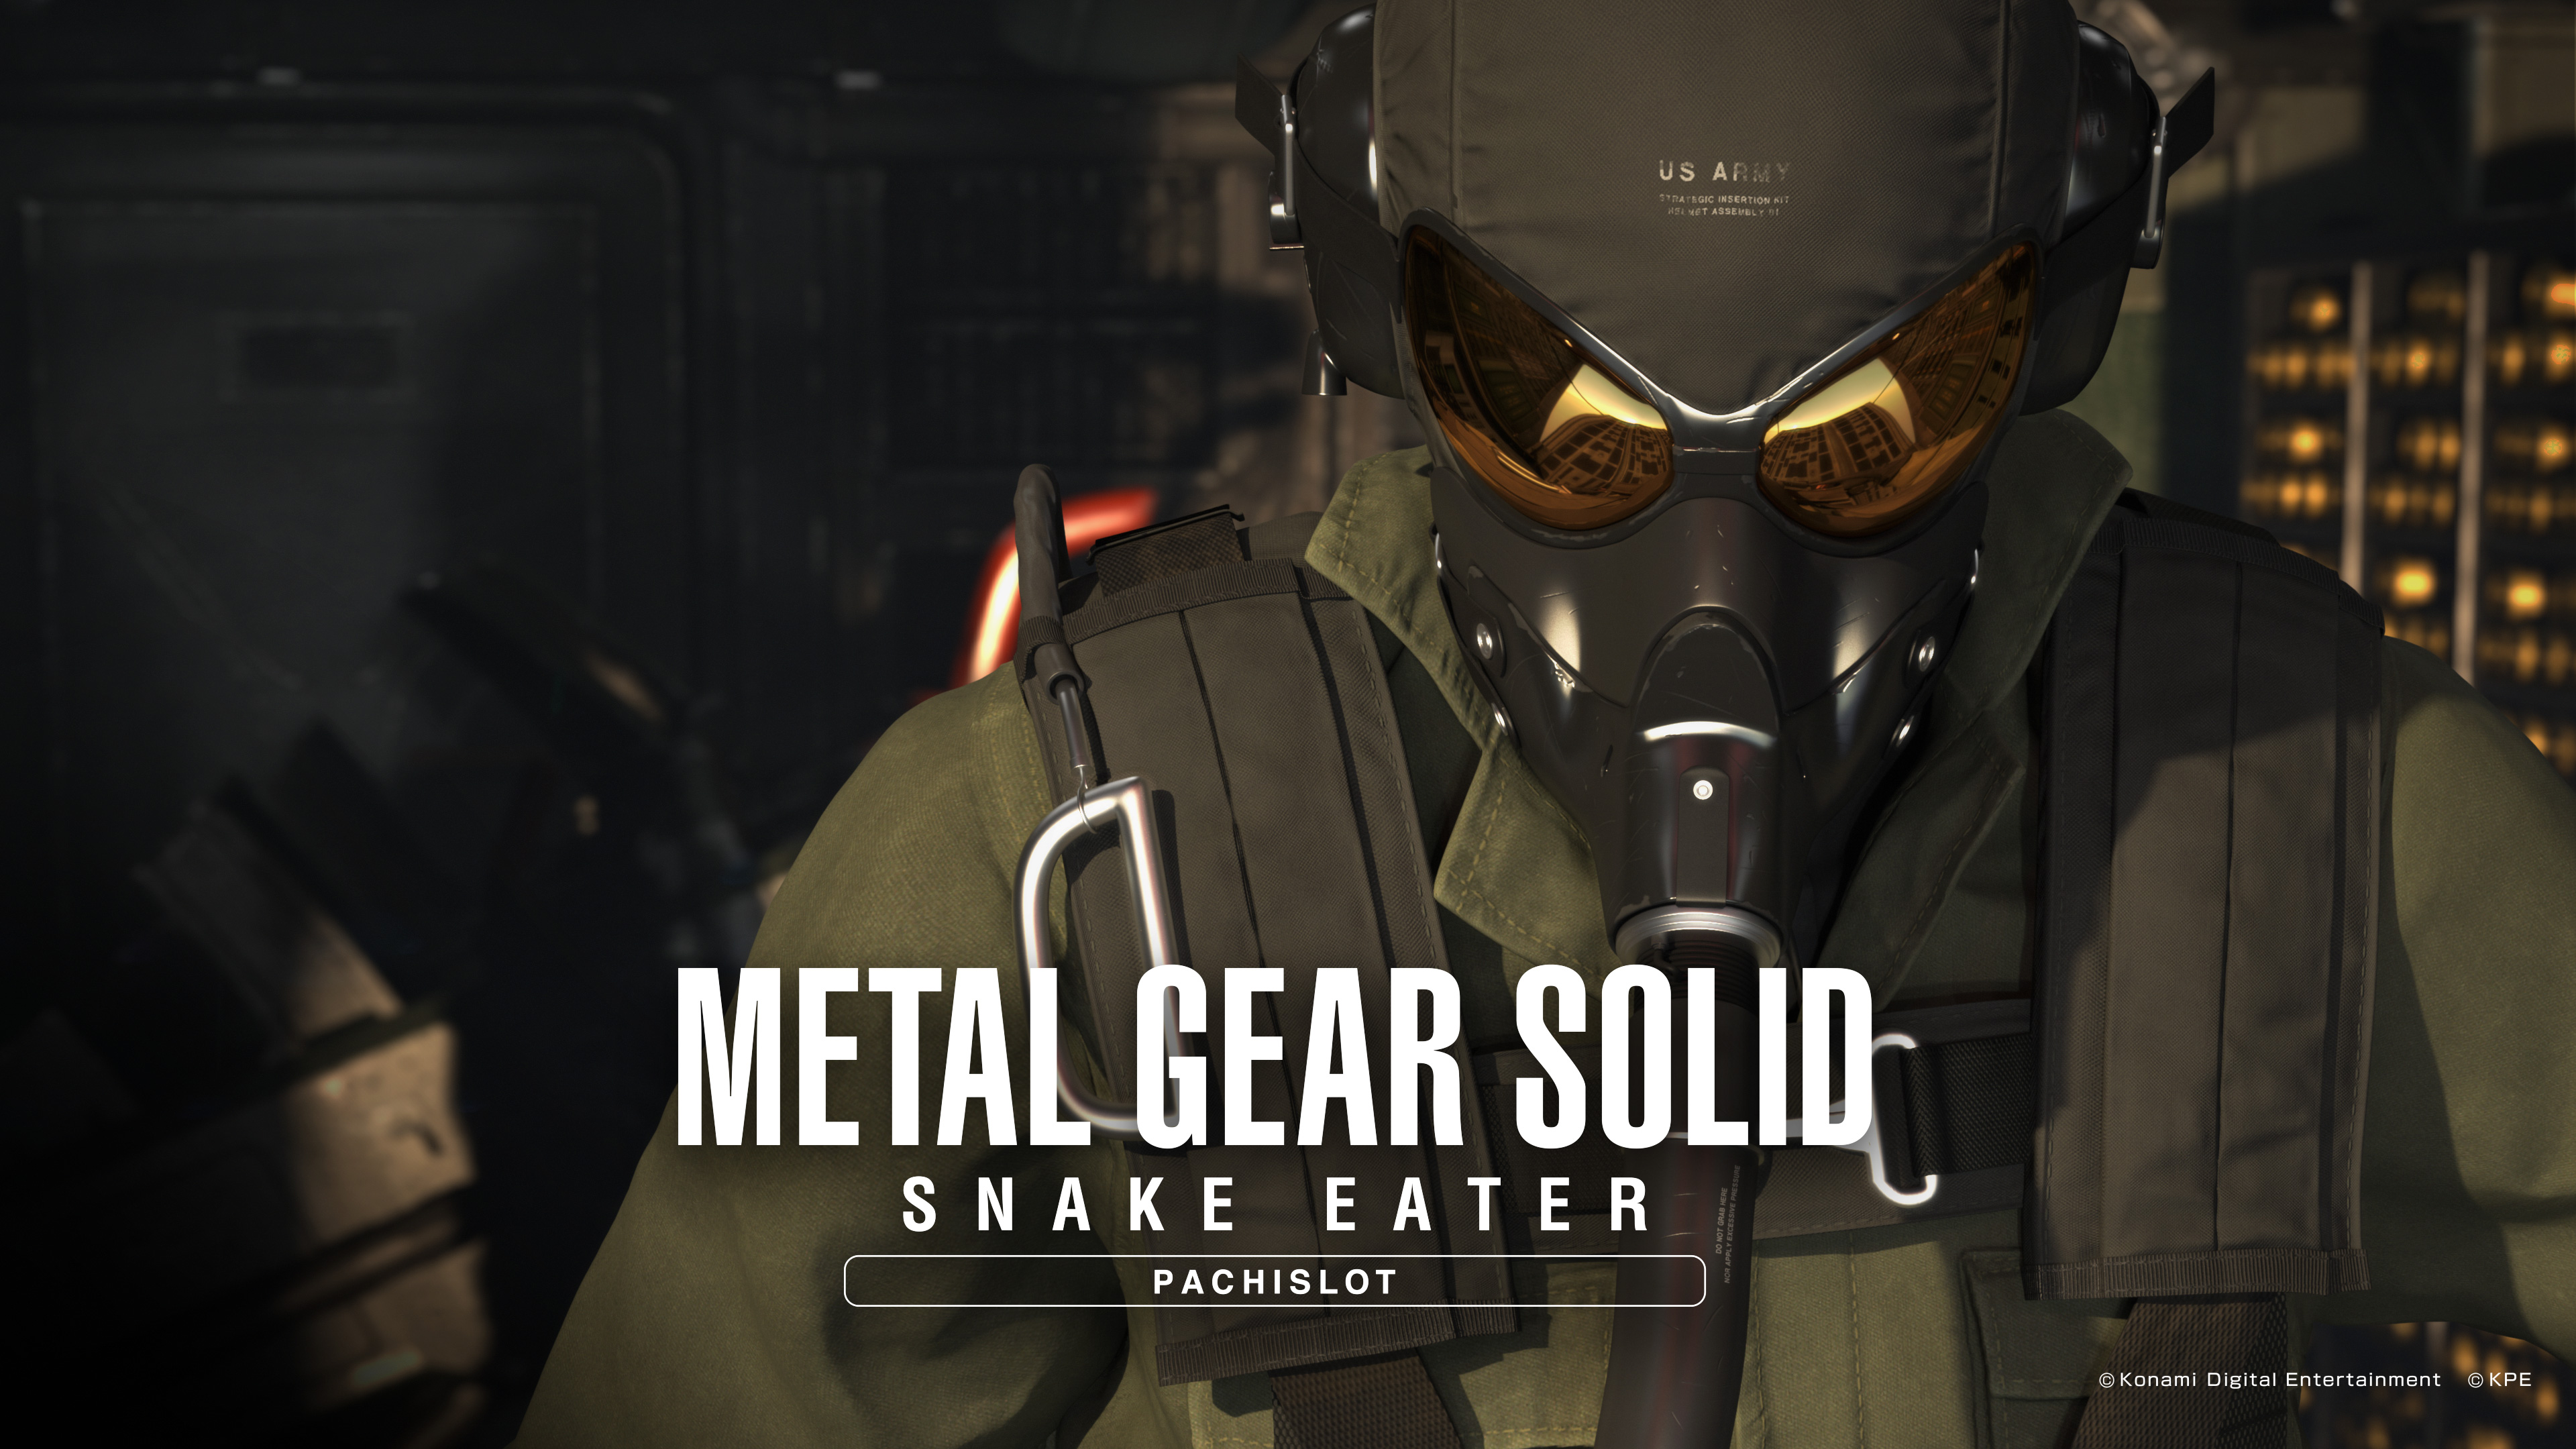 MGS-Snake-Eater-Pachislot-Wallpaper-PC-3